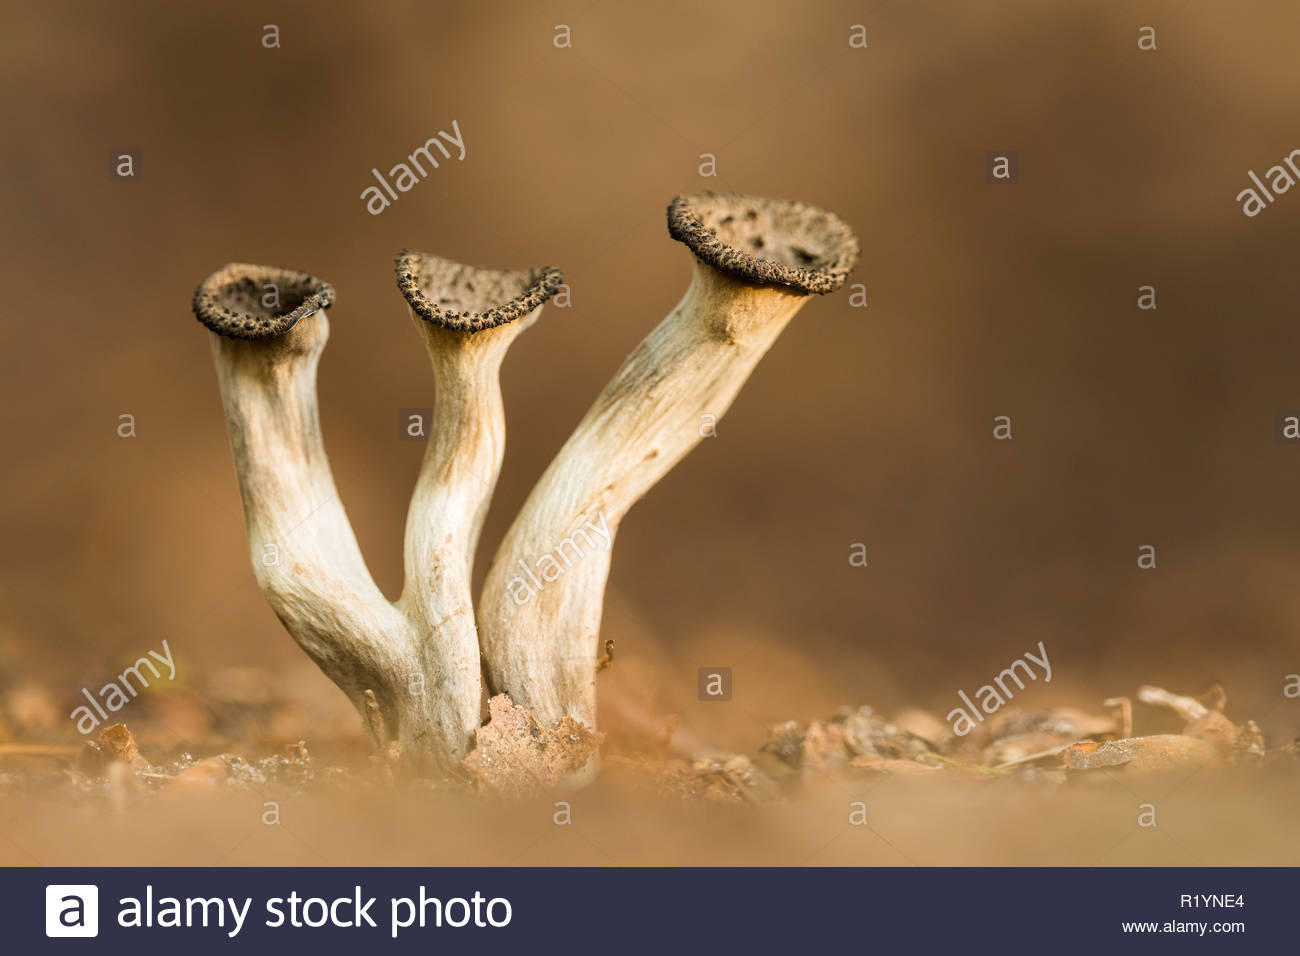 Horn of Plenty (Craterellus cornucopioides), New Forest National Park, Hampshire, England - Stock Image